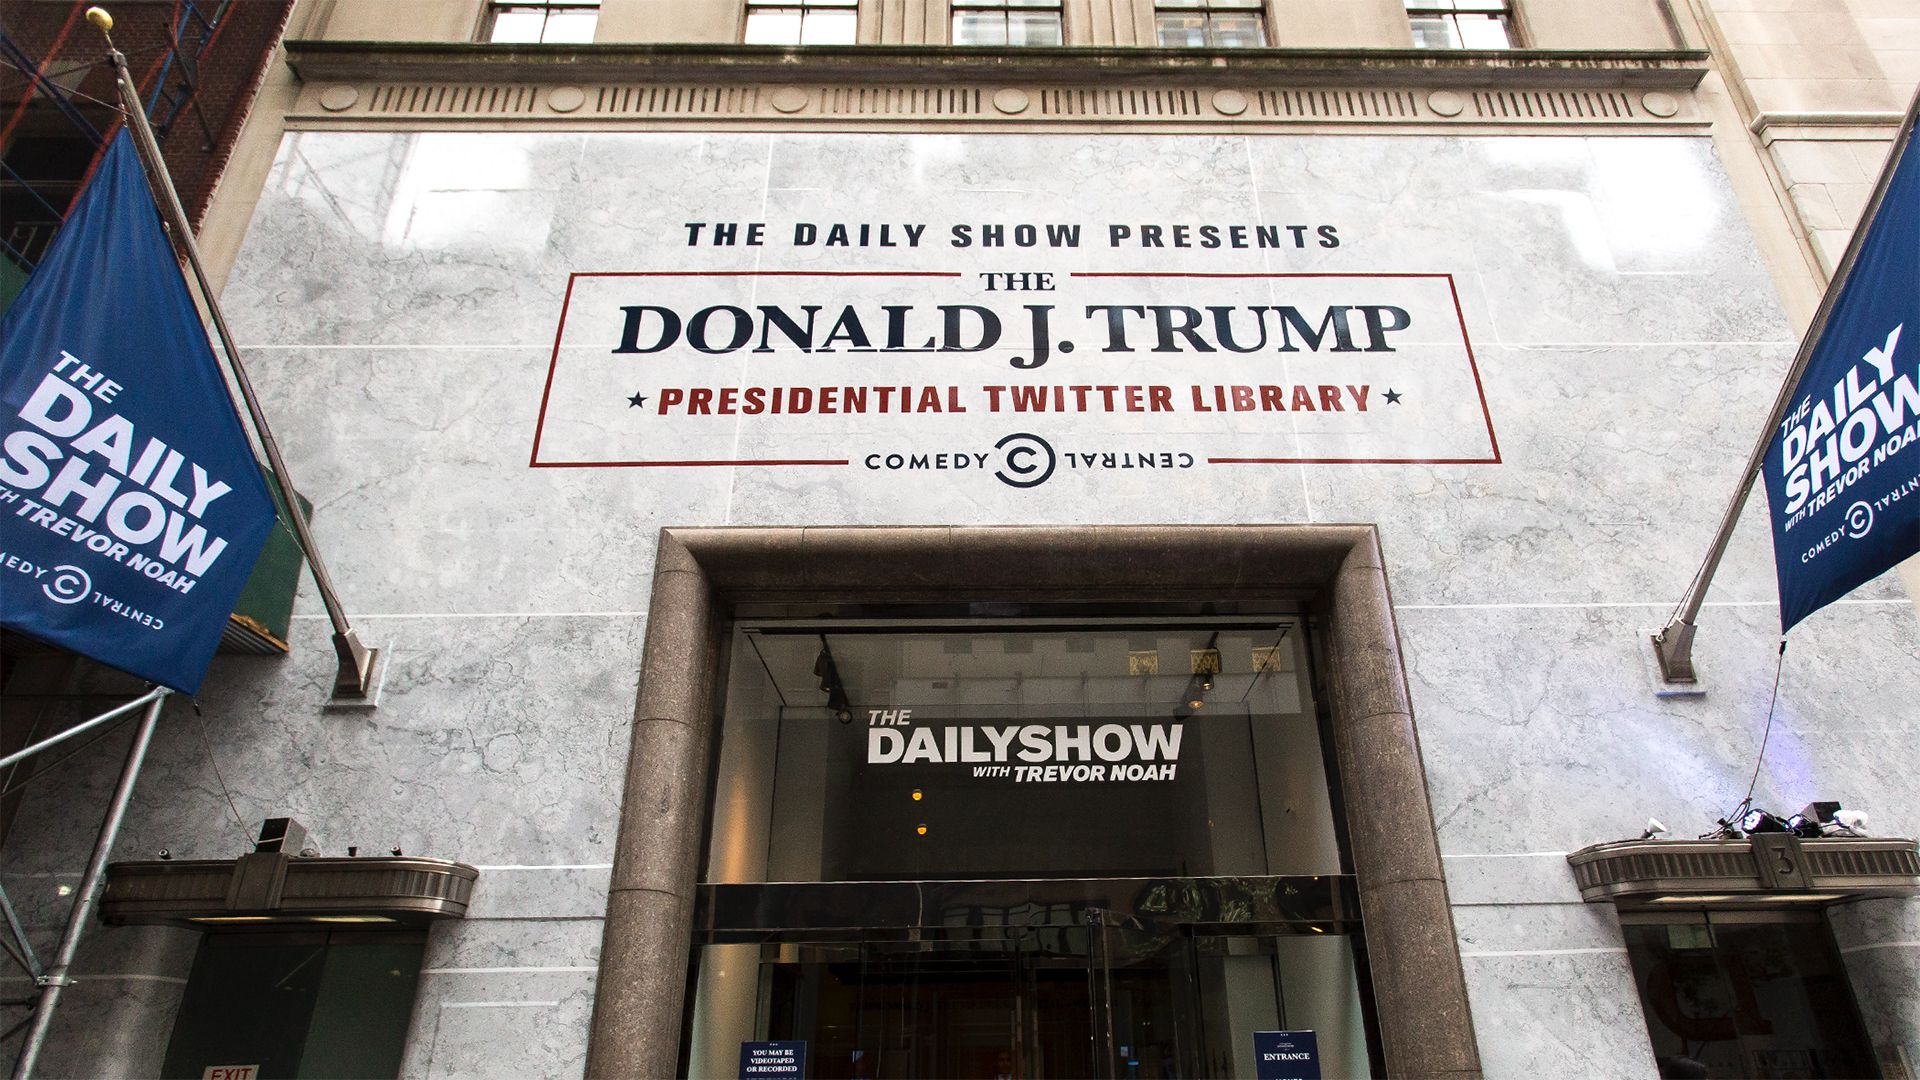 The Daily Show Presents The Donald J Trump Presidential Twitter Library Virtual Tour